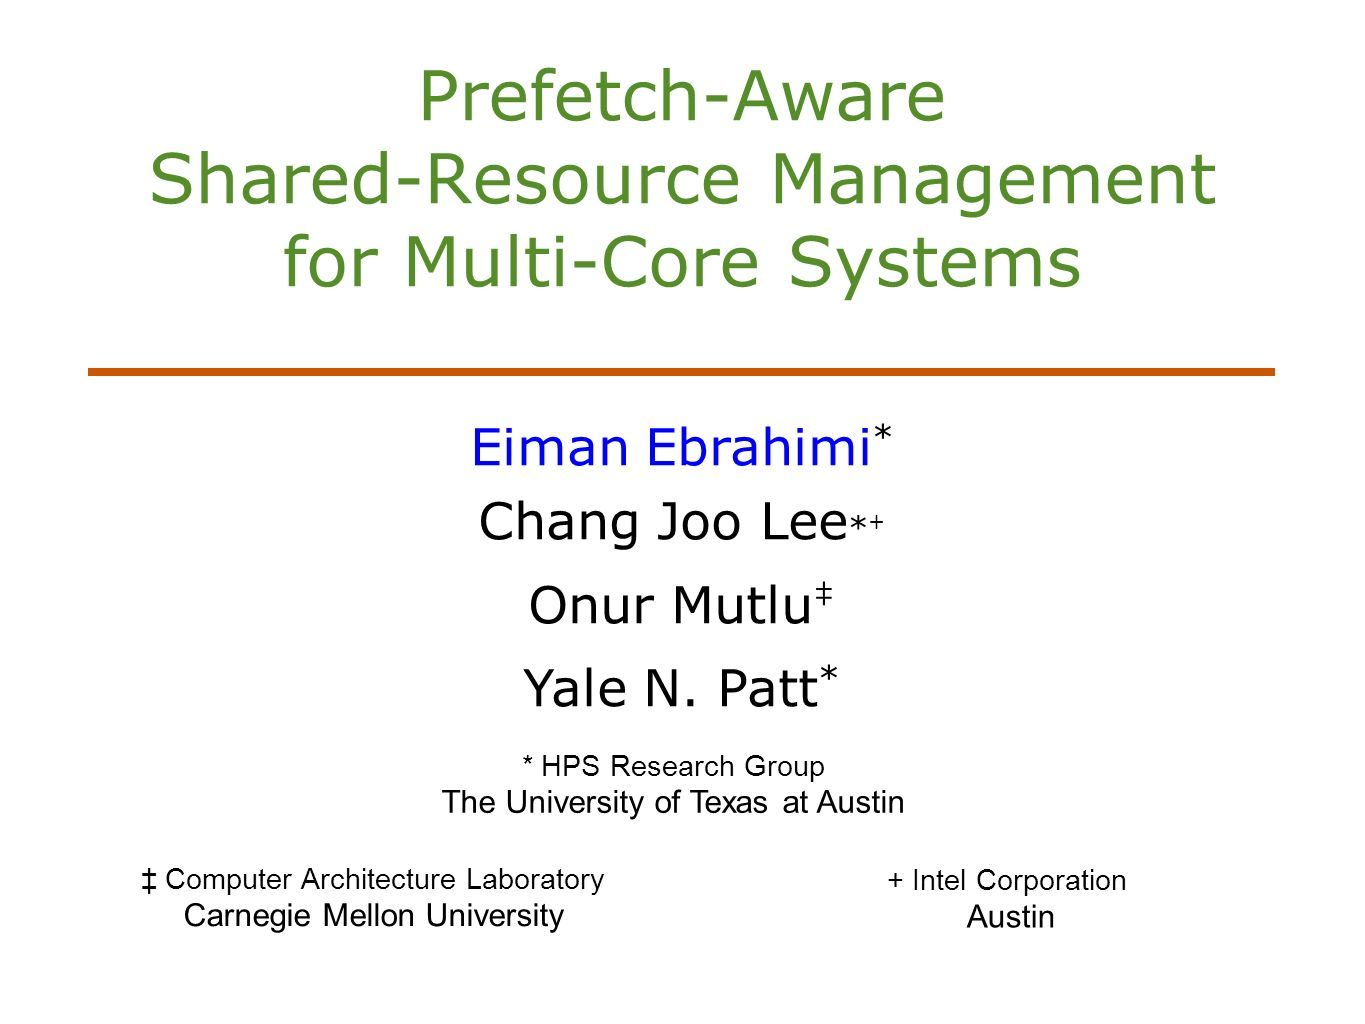 Prefetch-Aware Shared-Resource Management for Multi-Core Systems Eiman Ebrahimi * Chang Joo Lee * + Onur Mutlu Yale N.